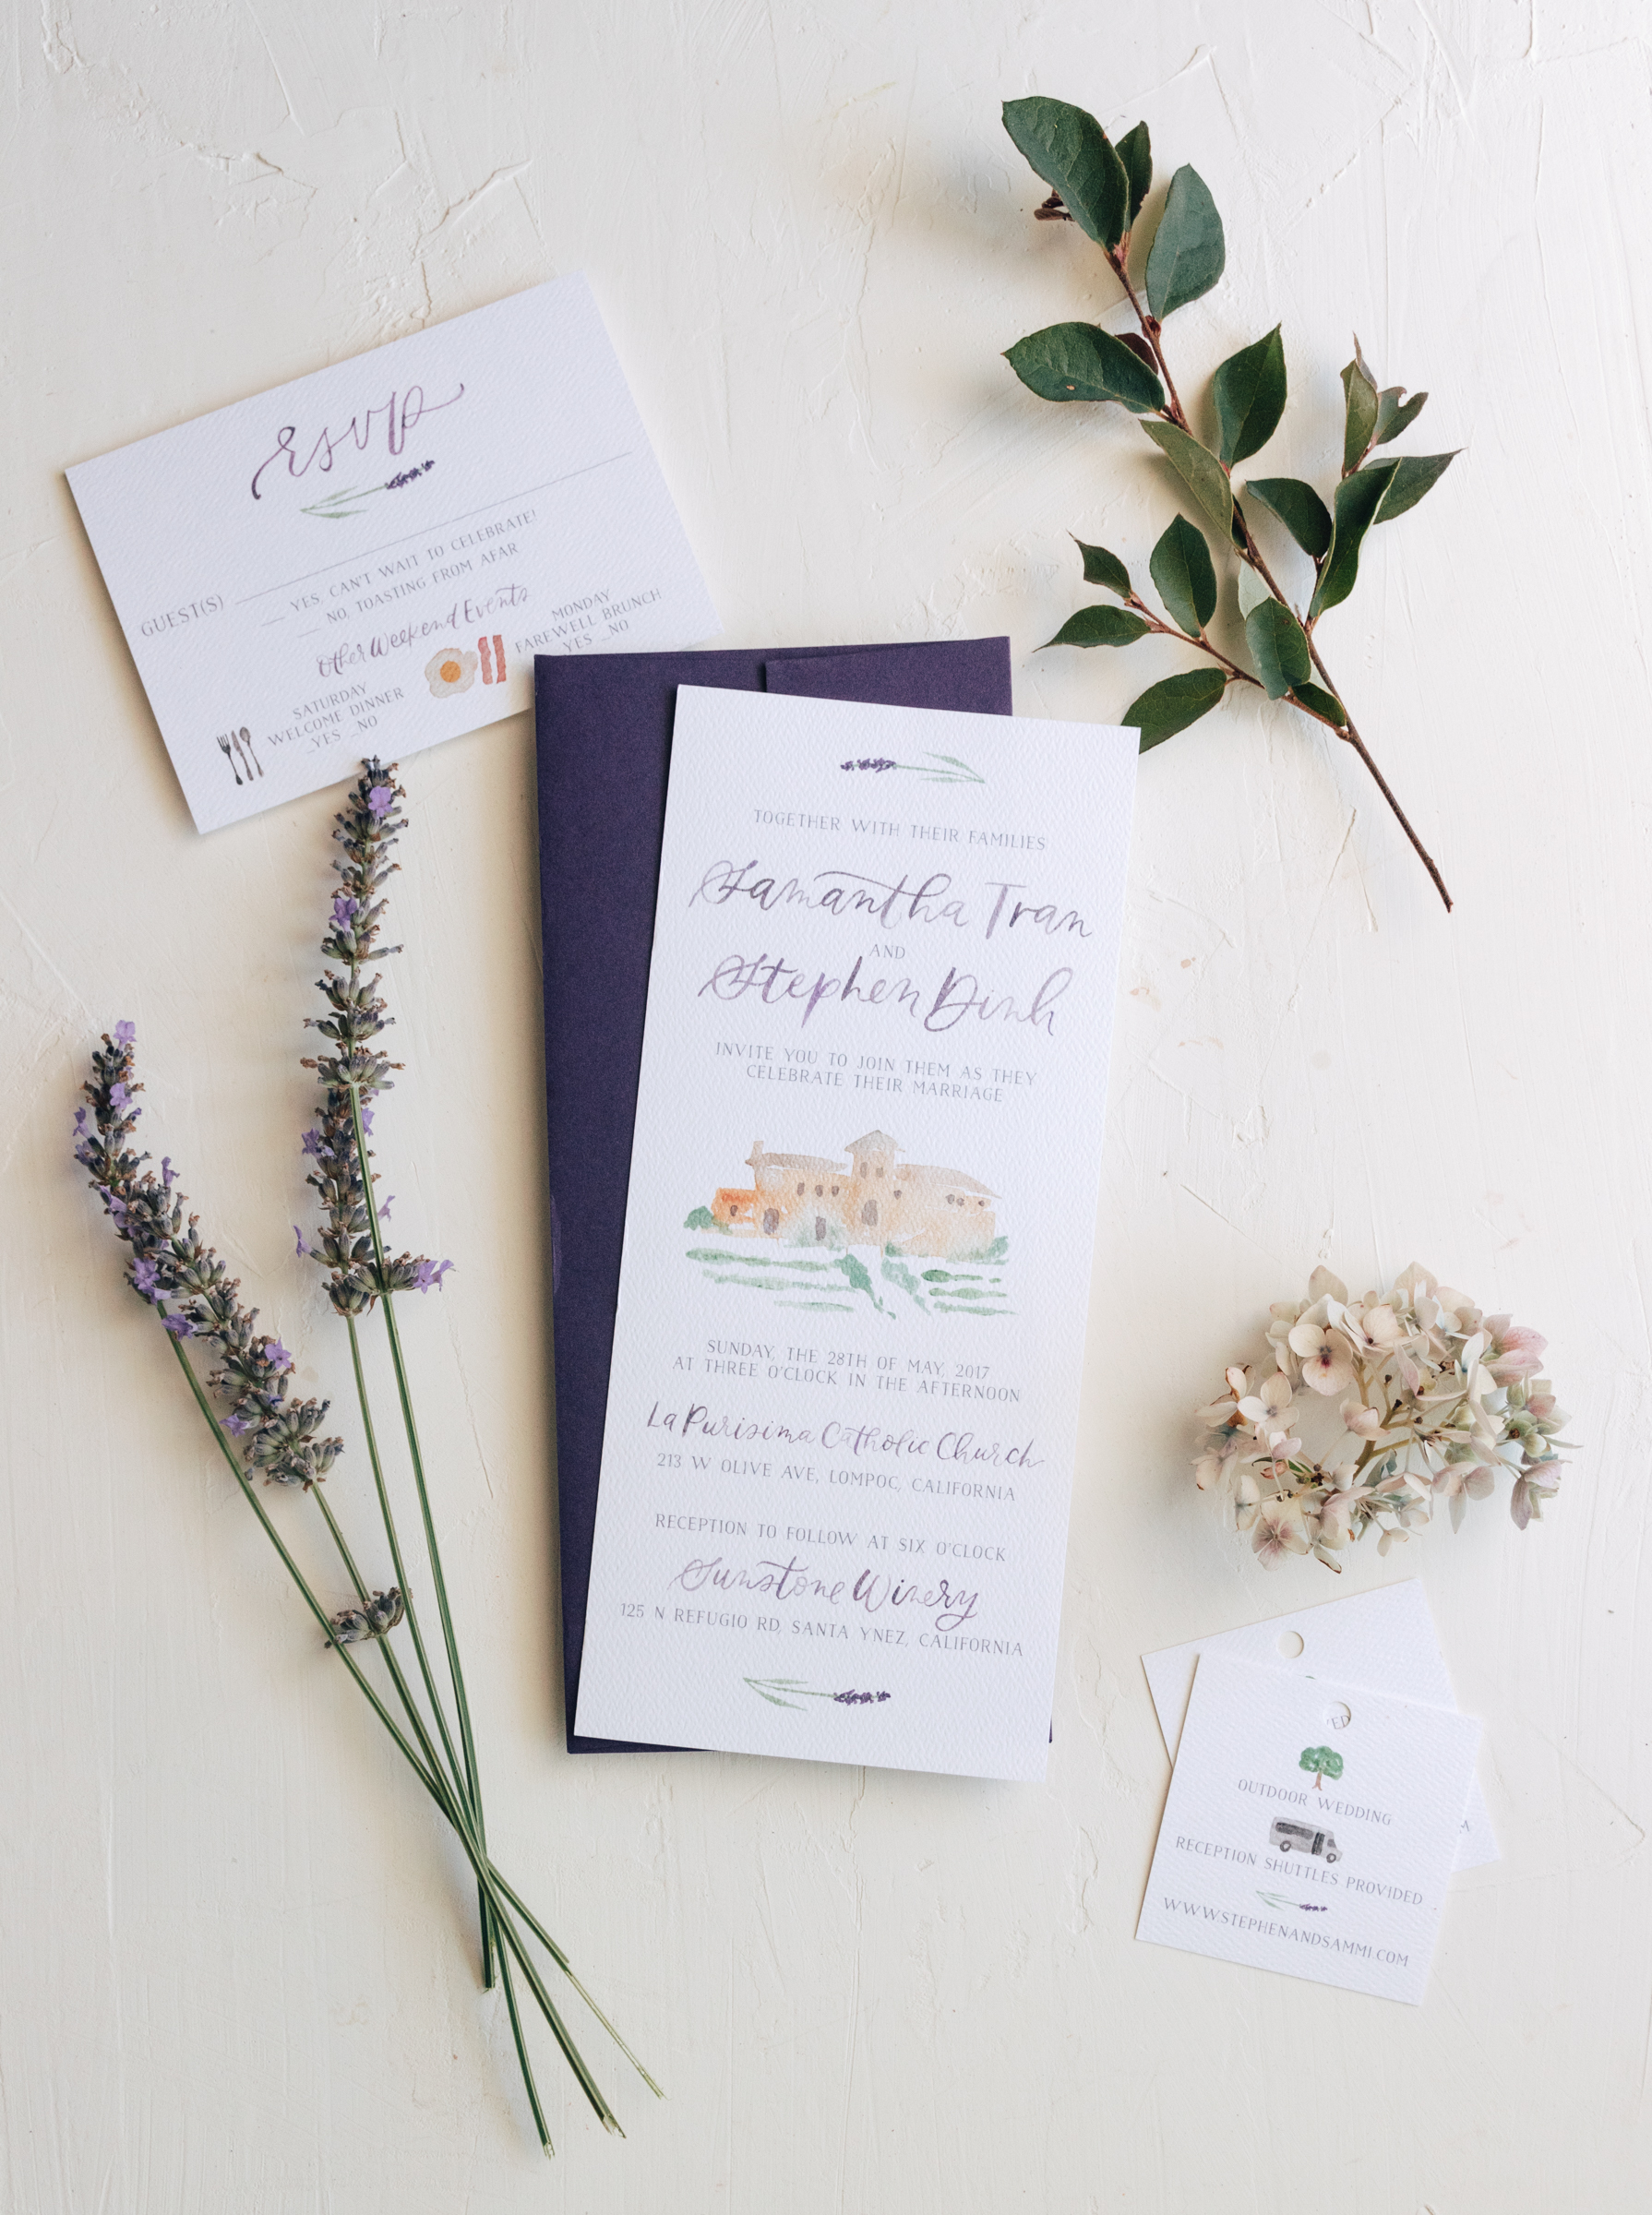 Romantic Watercolor Venue and Lavender Wedding Invitation